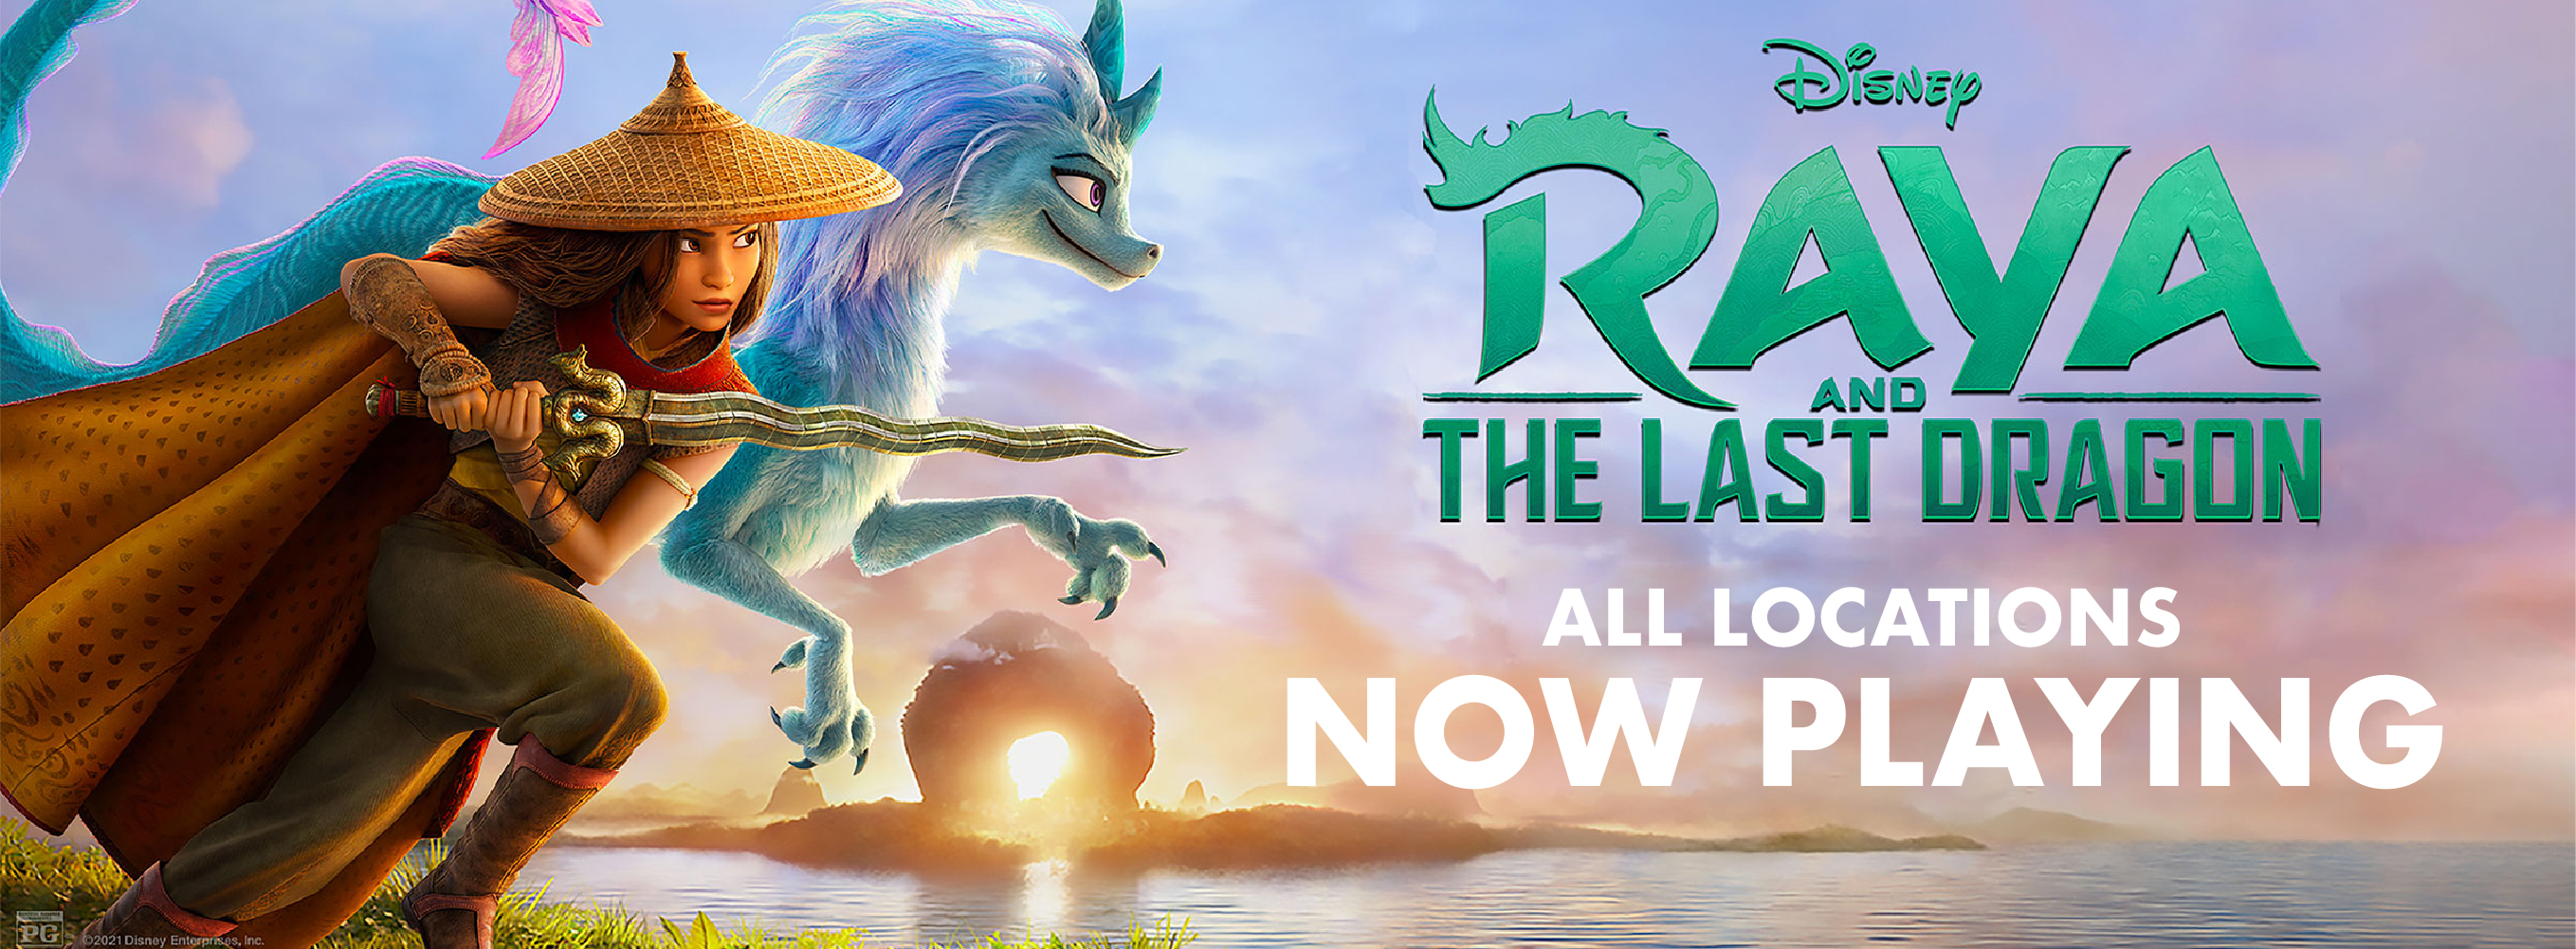 Get tickets to Raya and the Last Dragon now playing at all locations